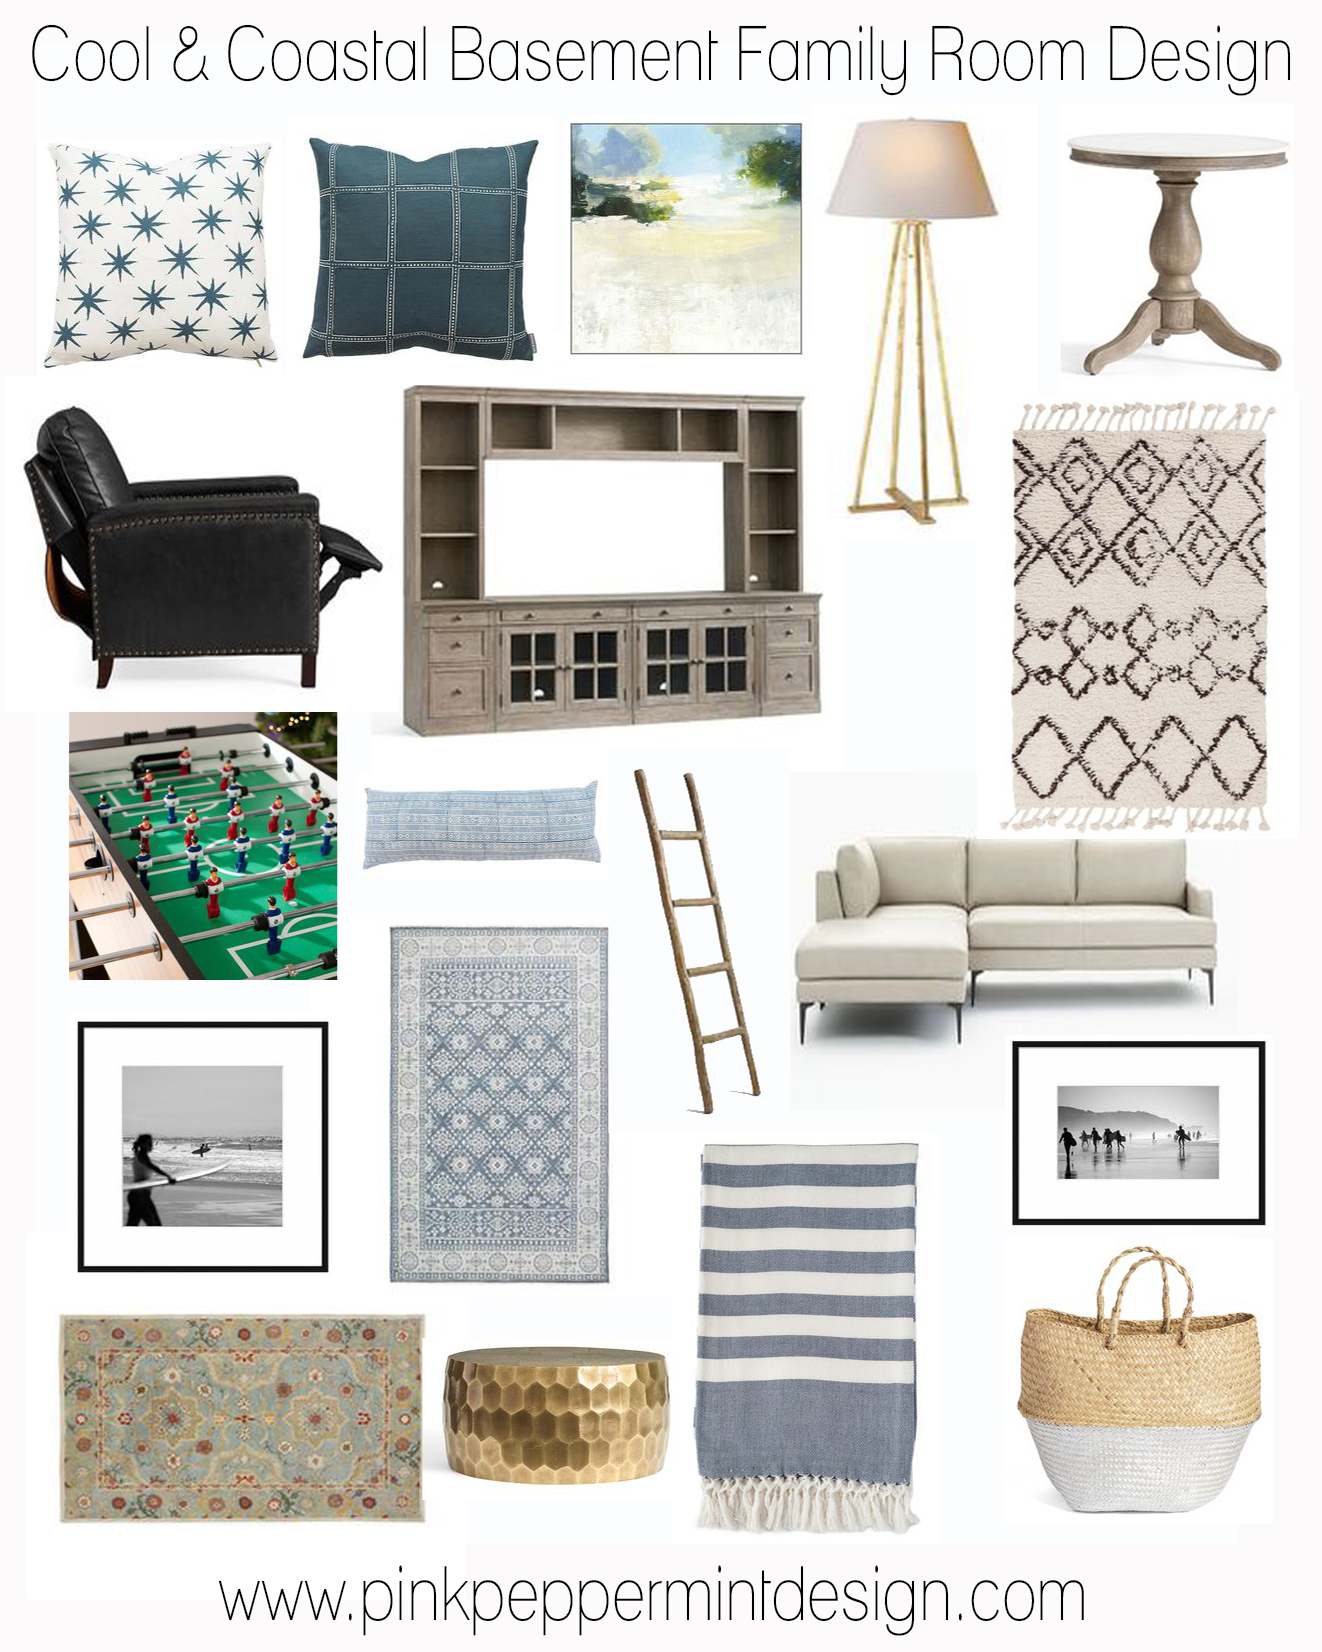 Cool and coastal basement family room design collage